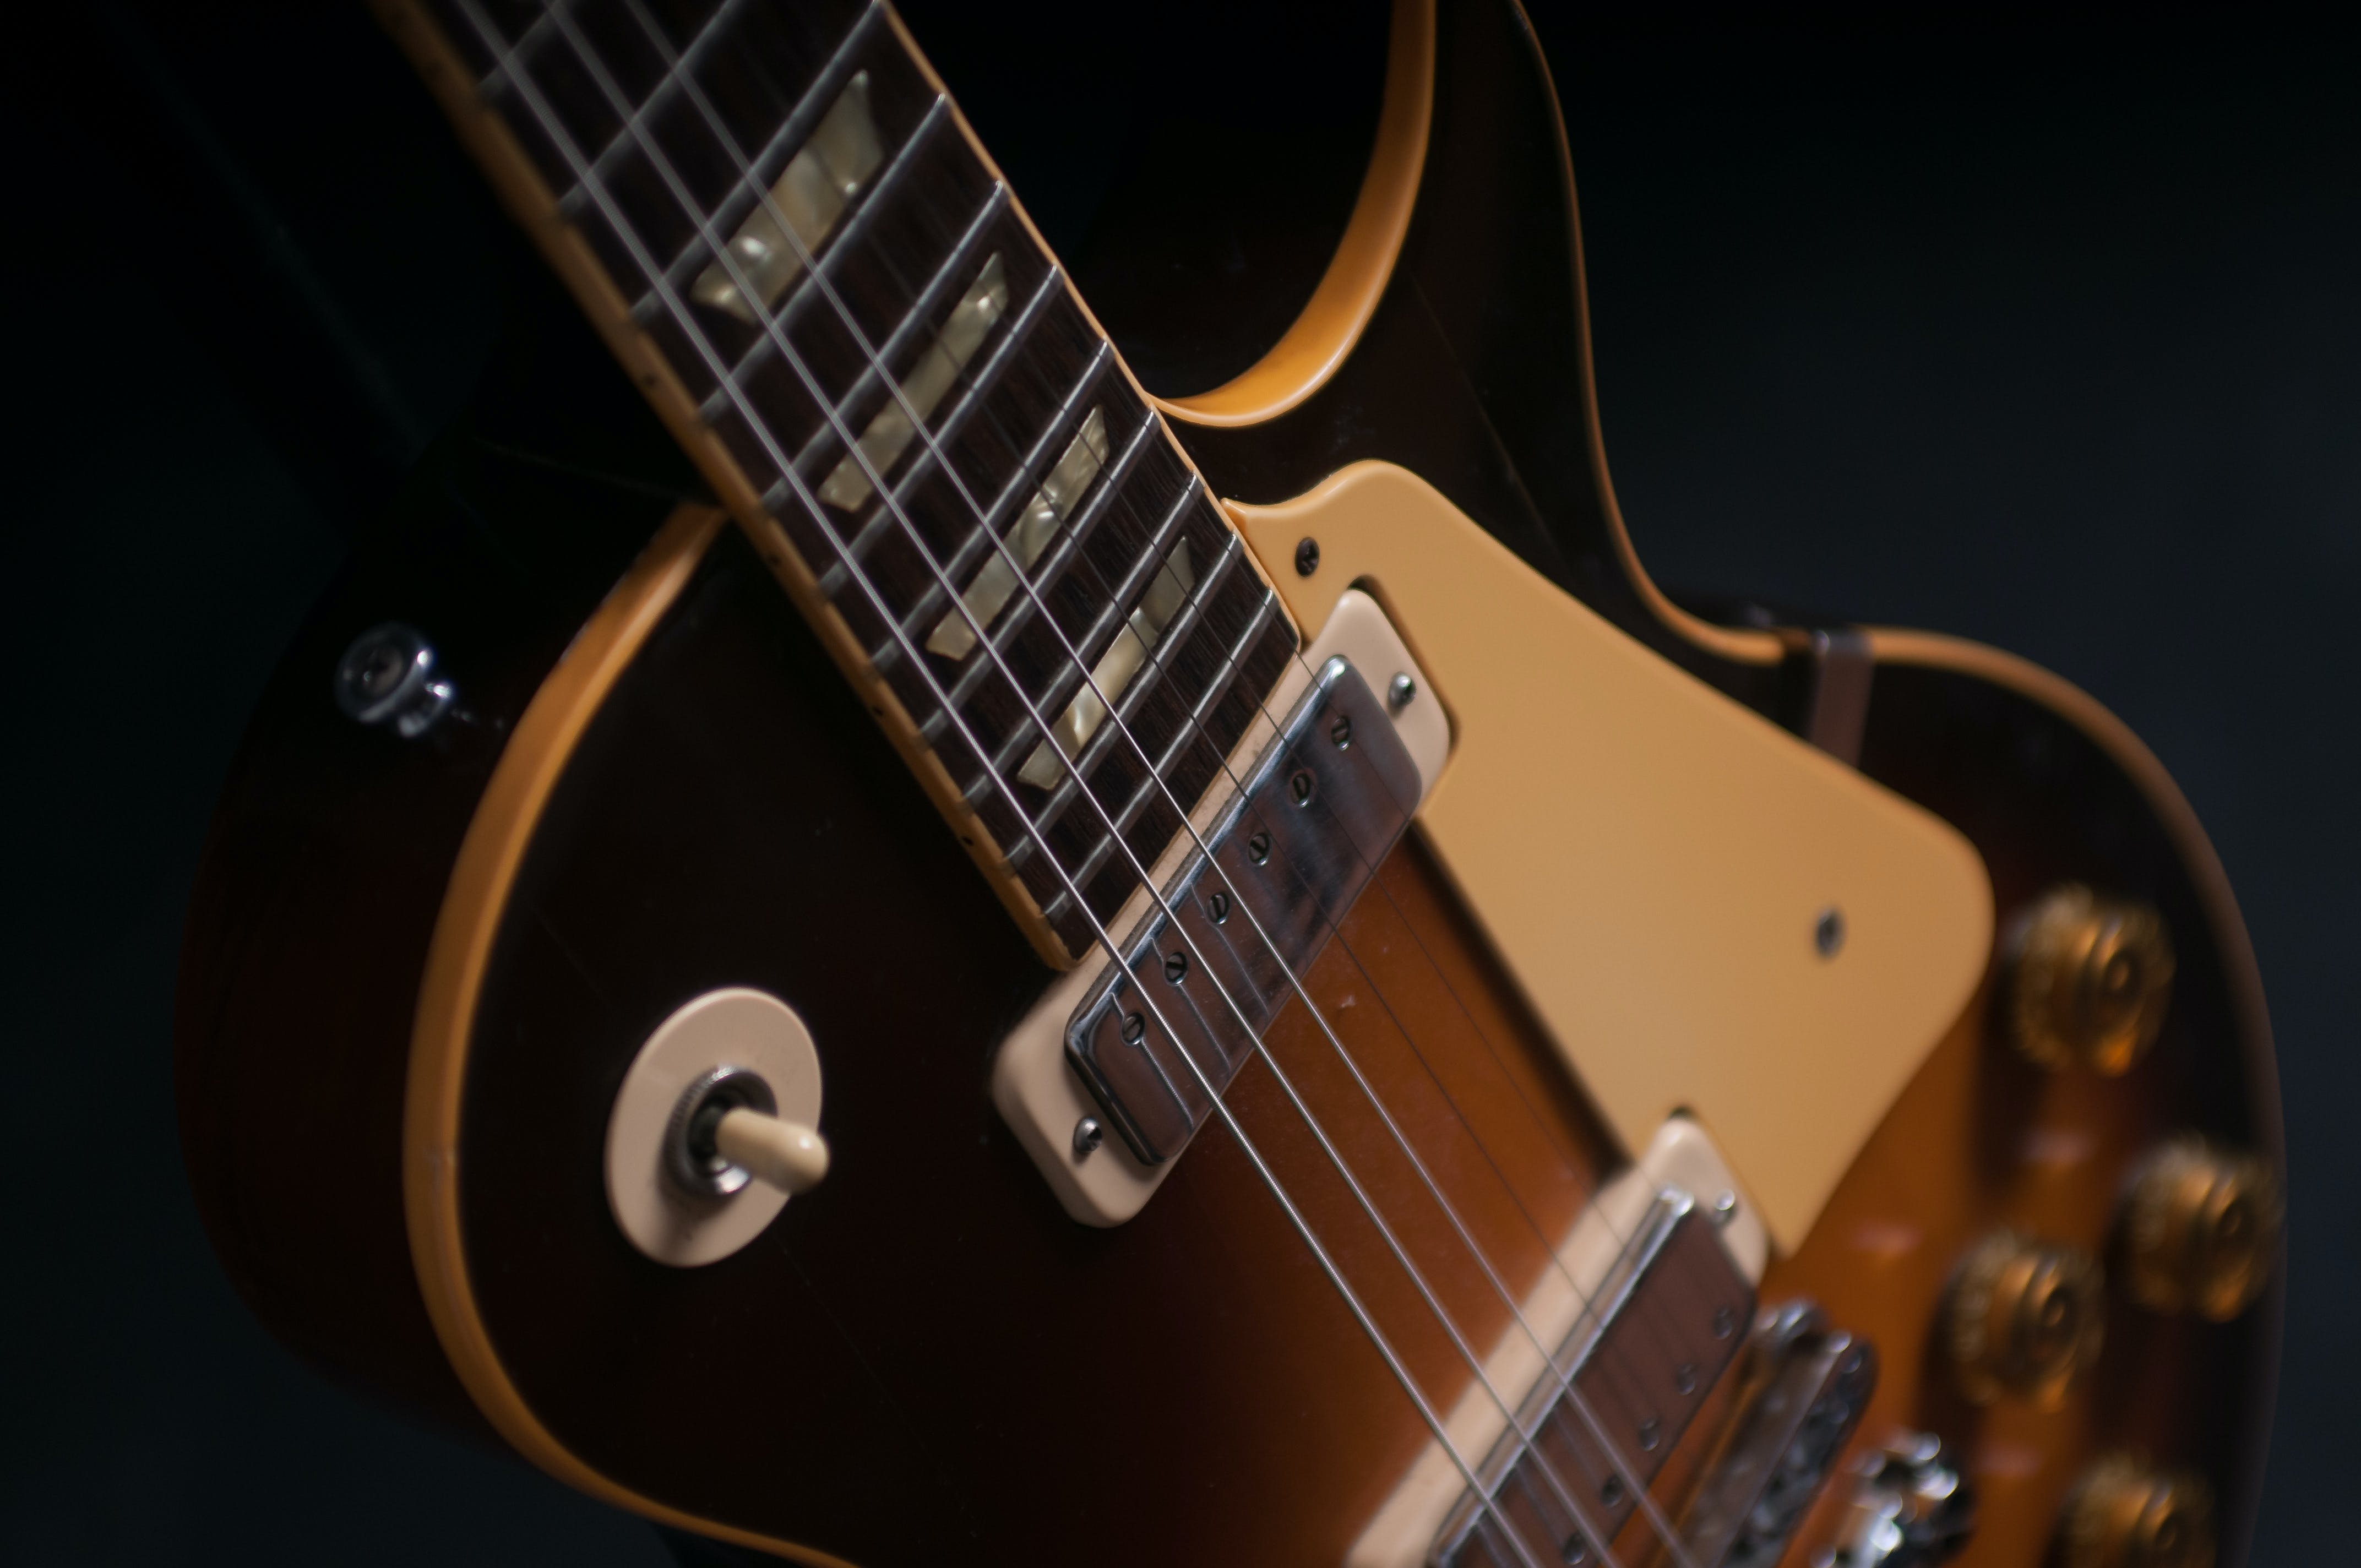 Free stock photo of electric guitar, guitar, Les paul 72 deluxe